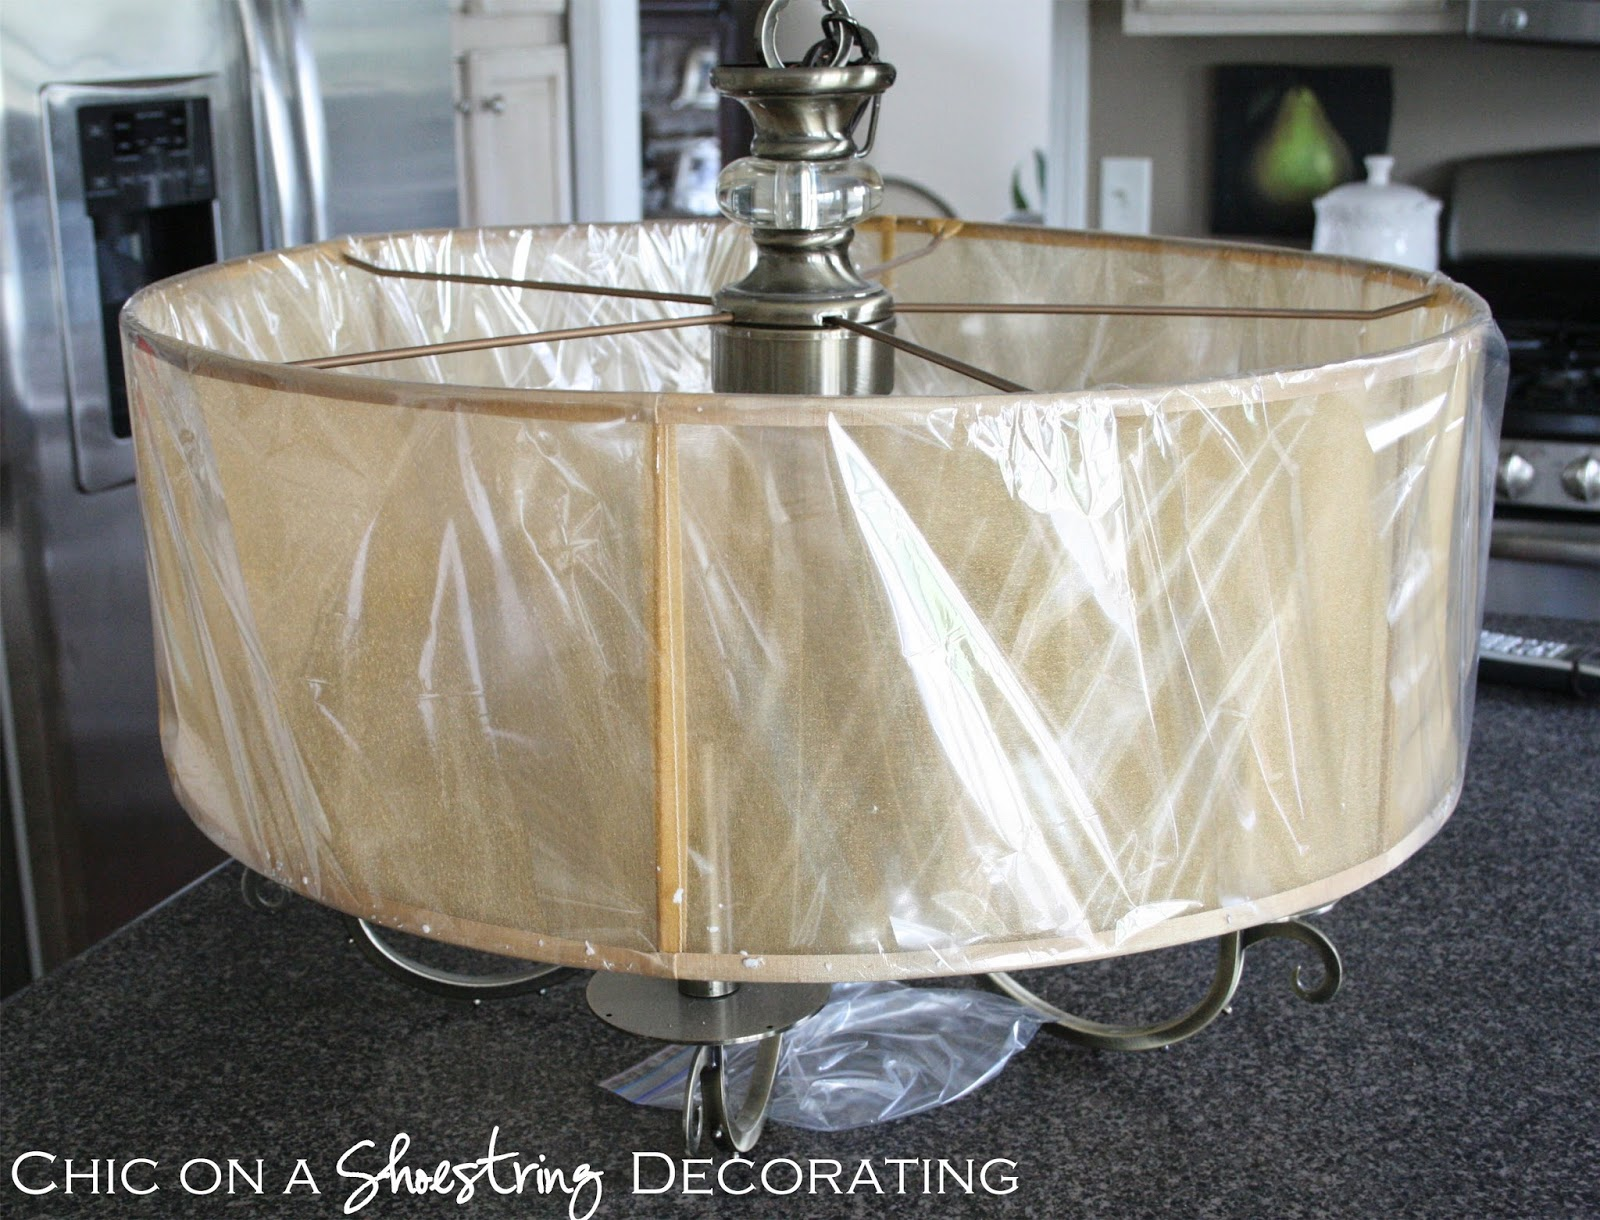 chandelier before, chic on a shoestring decorating blog